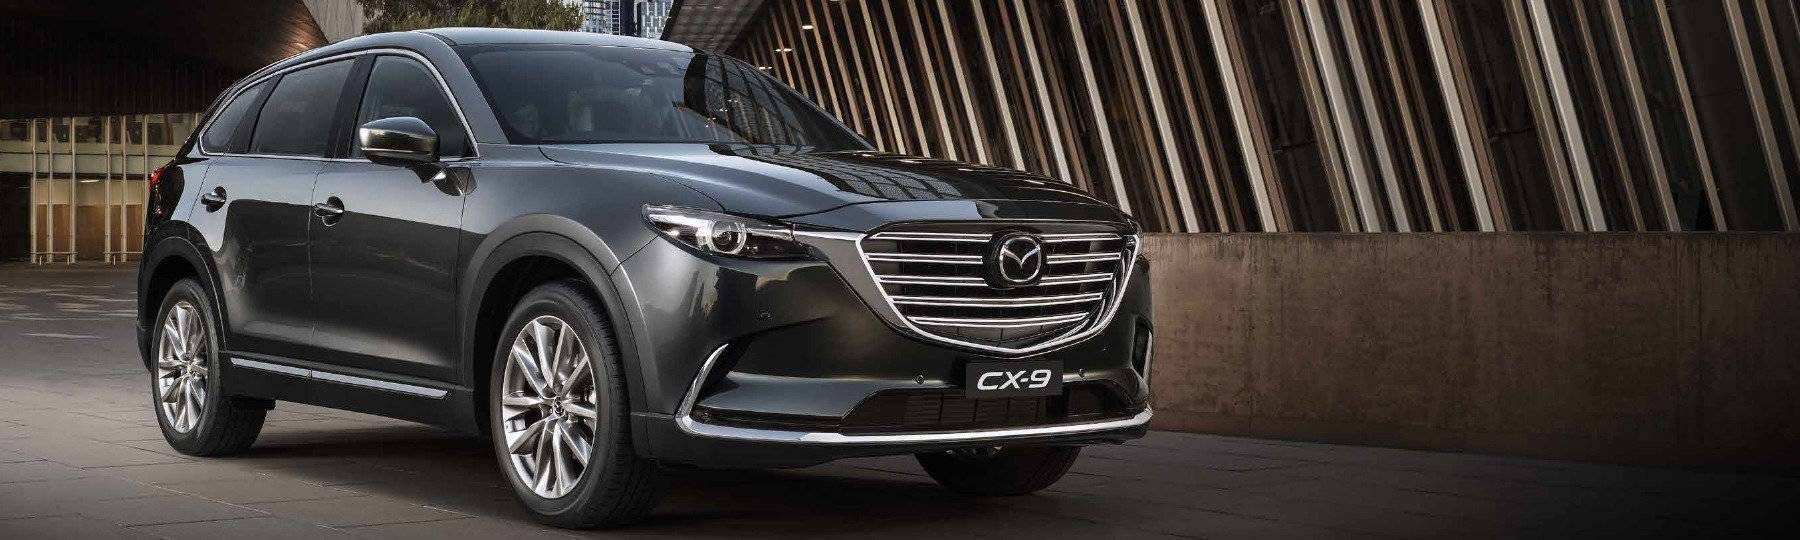 Mazda Dealer Melbourne New And Used Brighton 03 6 2 3 Engine For Sale Cx 9